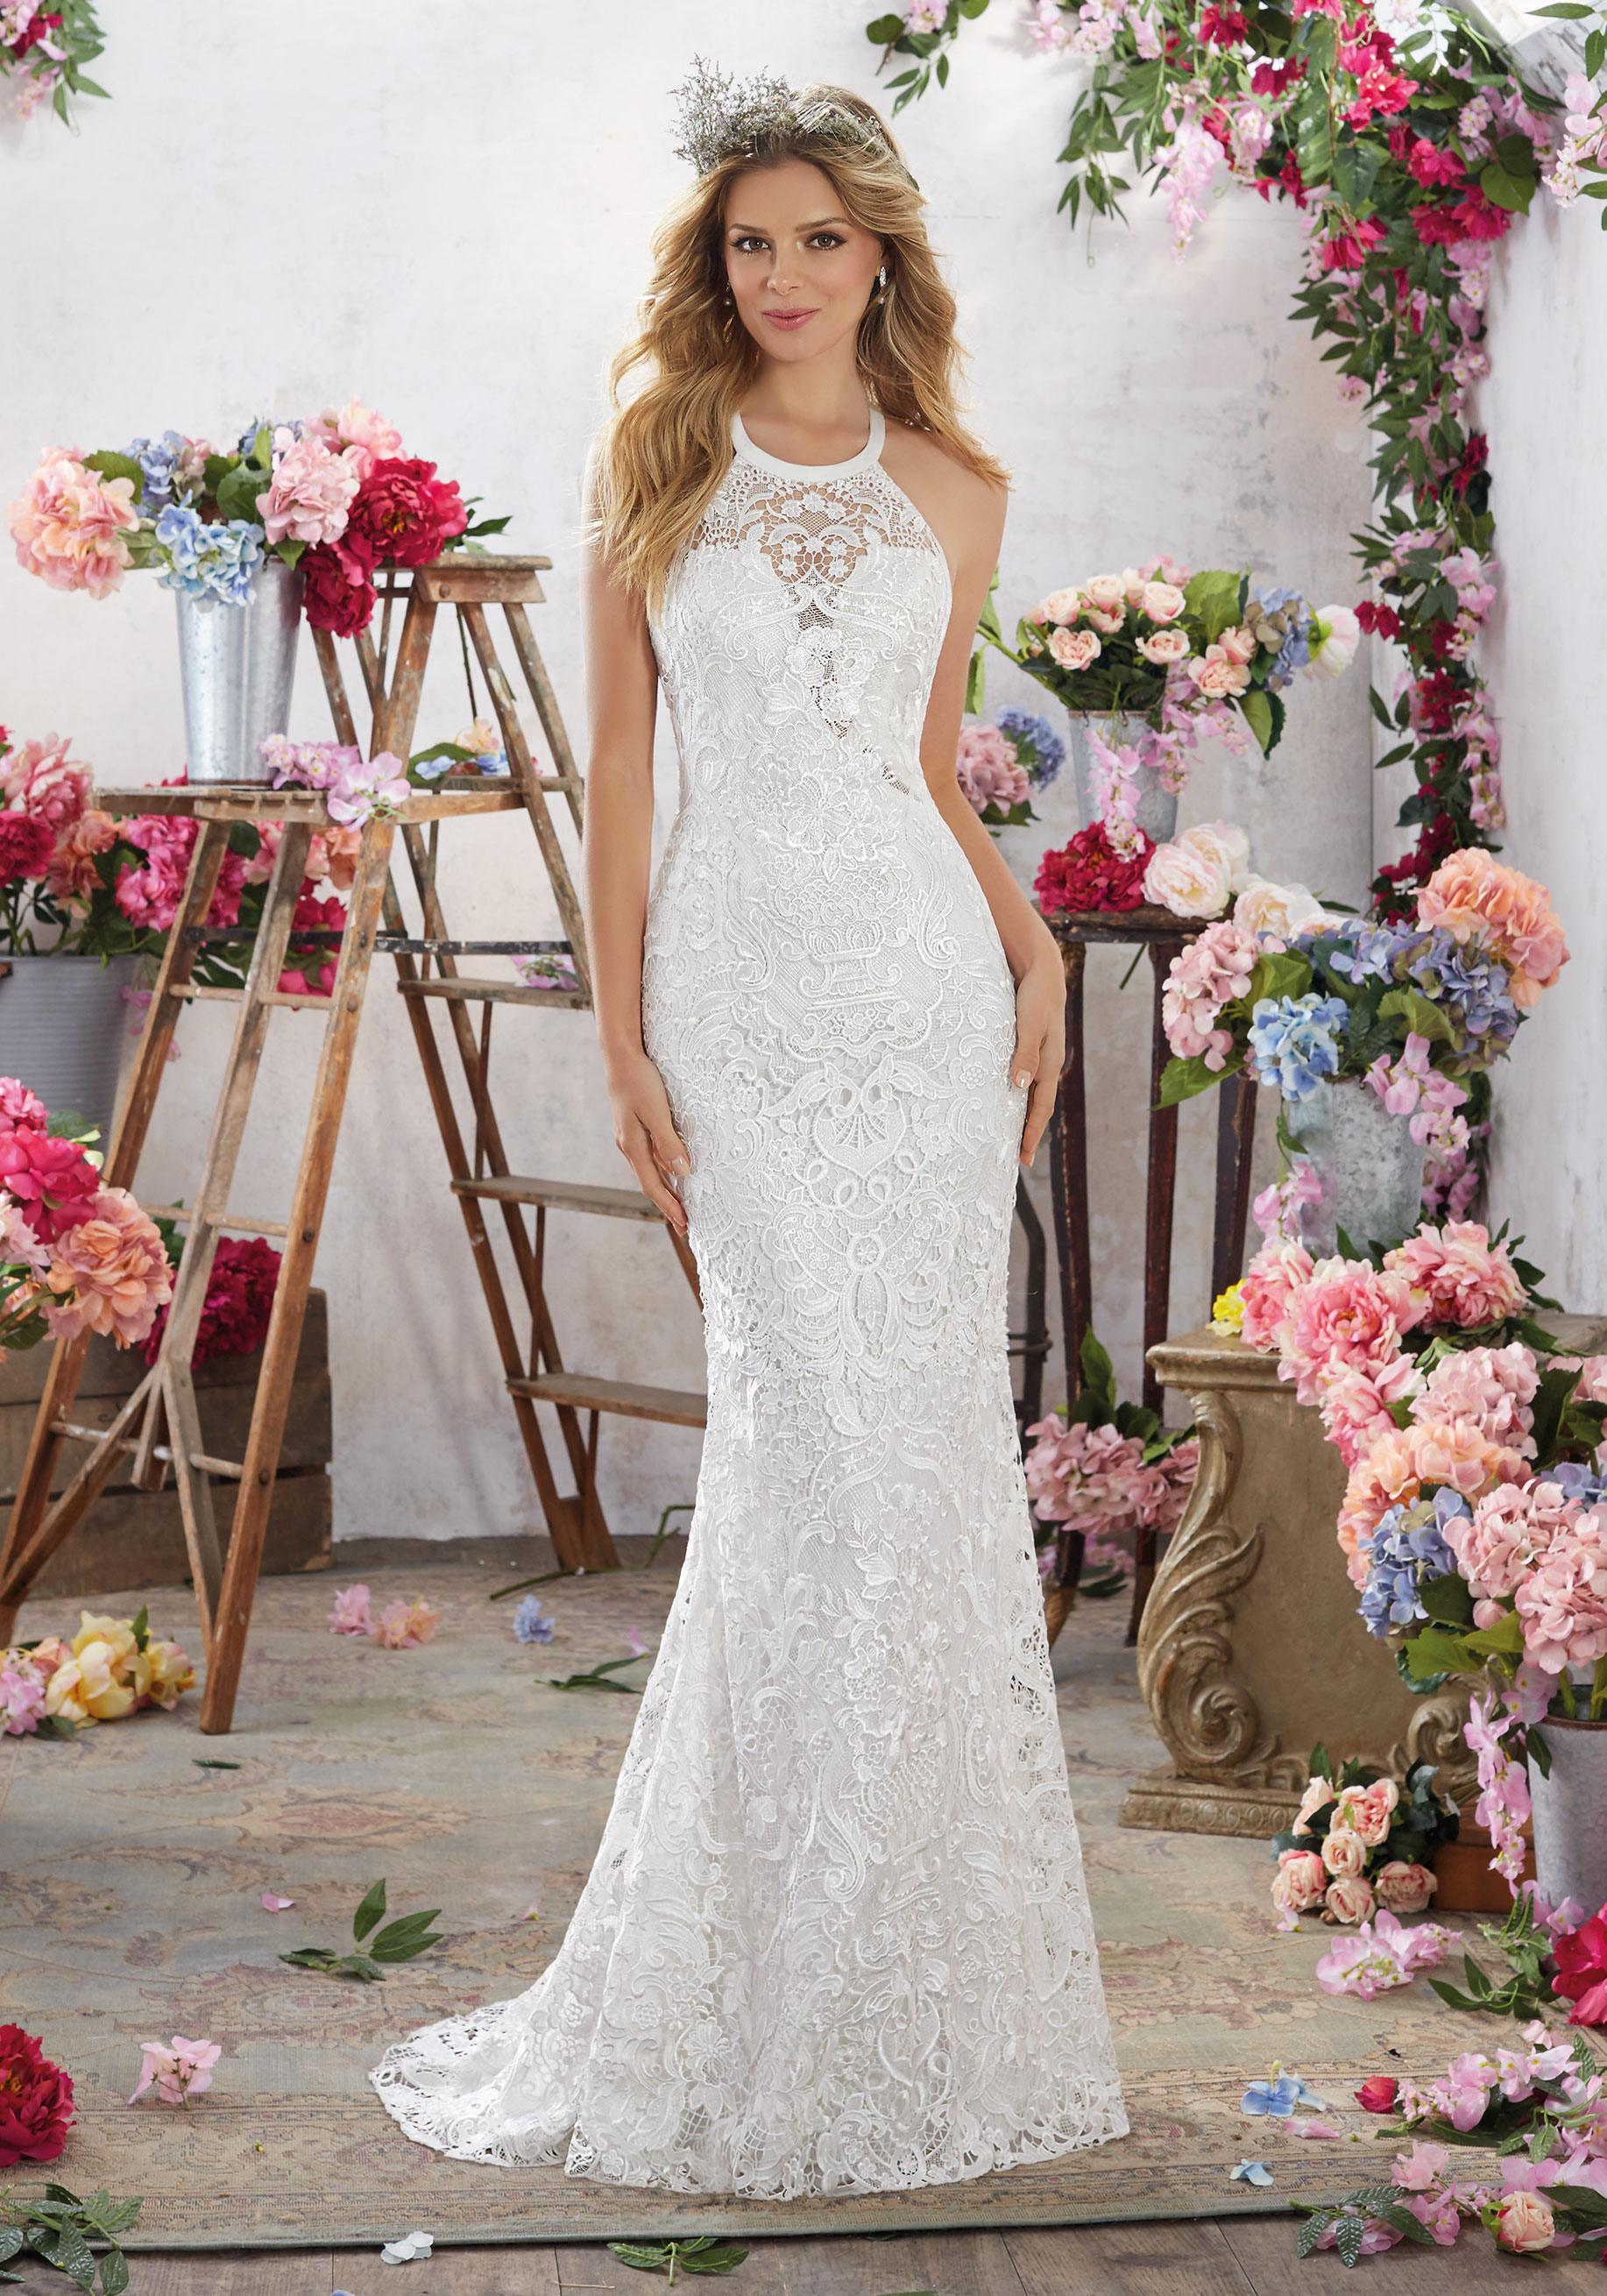 - Mori Lee - Maybelle/6851, White: 36/38